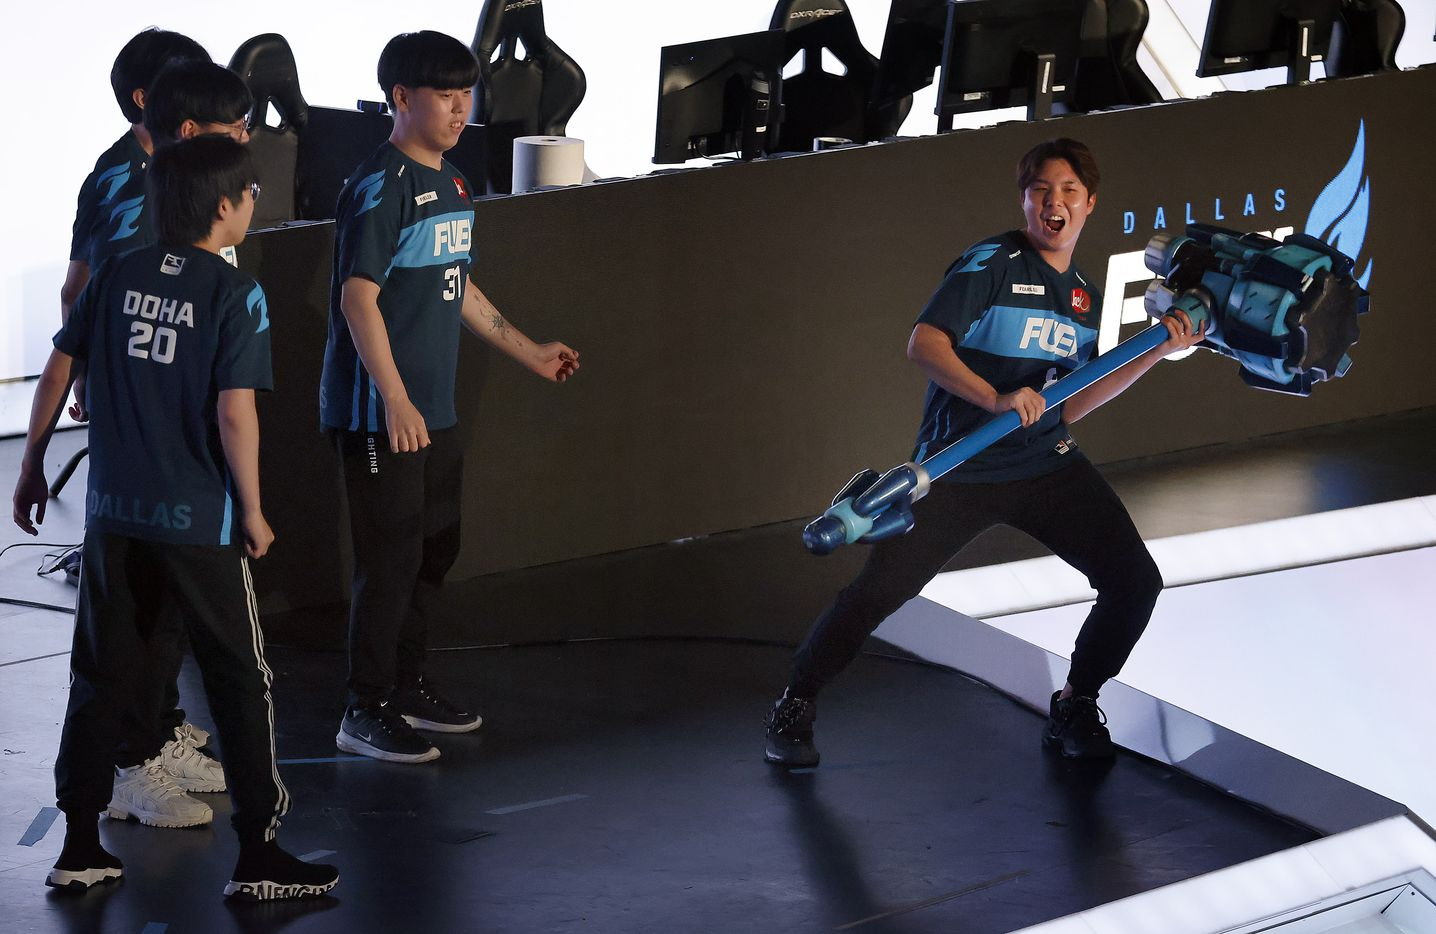 Dallas Fuel player Fearless (right) yells before slamming Reinhardt's hammer, knocking over his teammates during their Overwatch League introductions at Esports Stadium Arlington Friday, July 9, 2021. Dallas Fuel defeated the Houston Outlaws in The Battle for Texas, 3-0. It was the first in-person live competition for fans in over a year. Houston competed from their hometown. (Tom Fox/The Dallas Morning News)